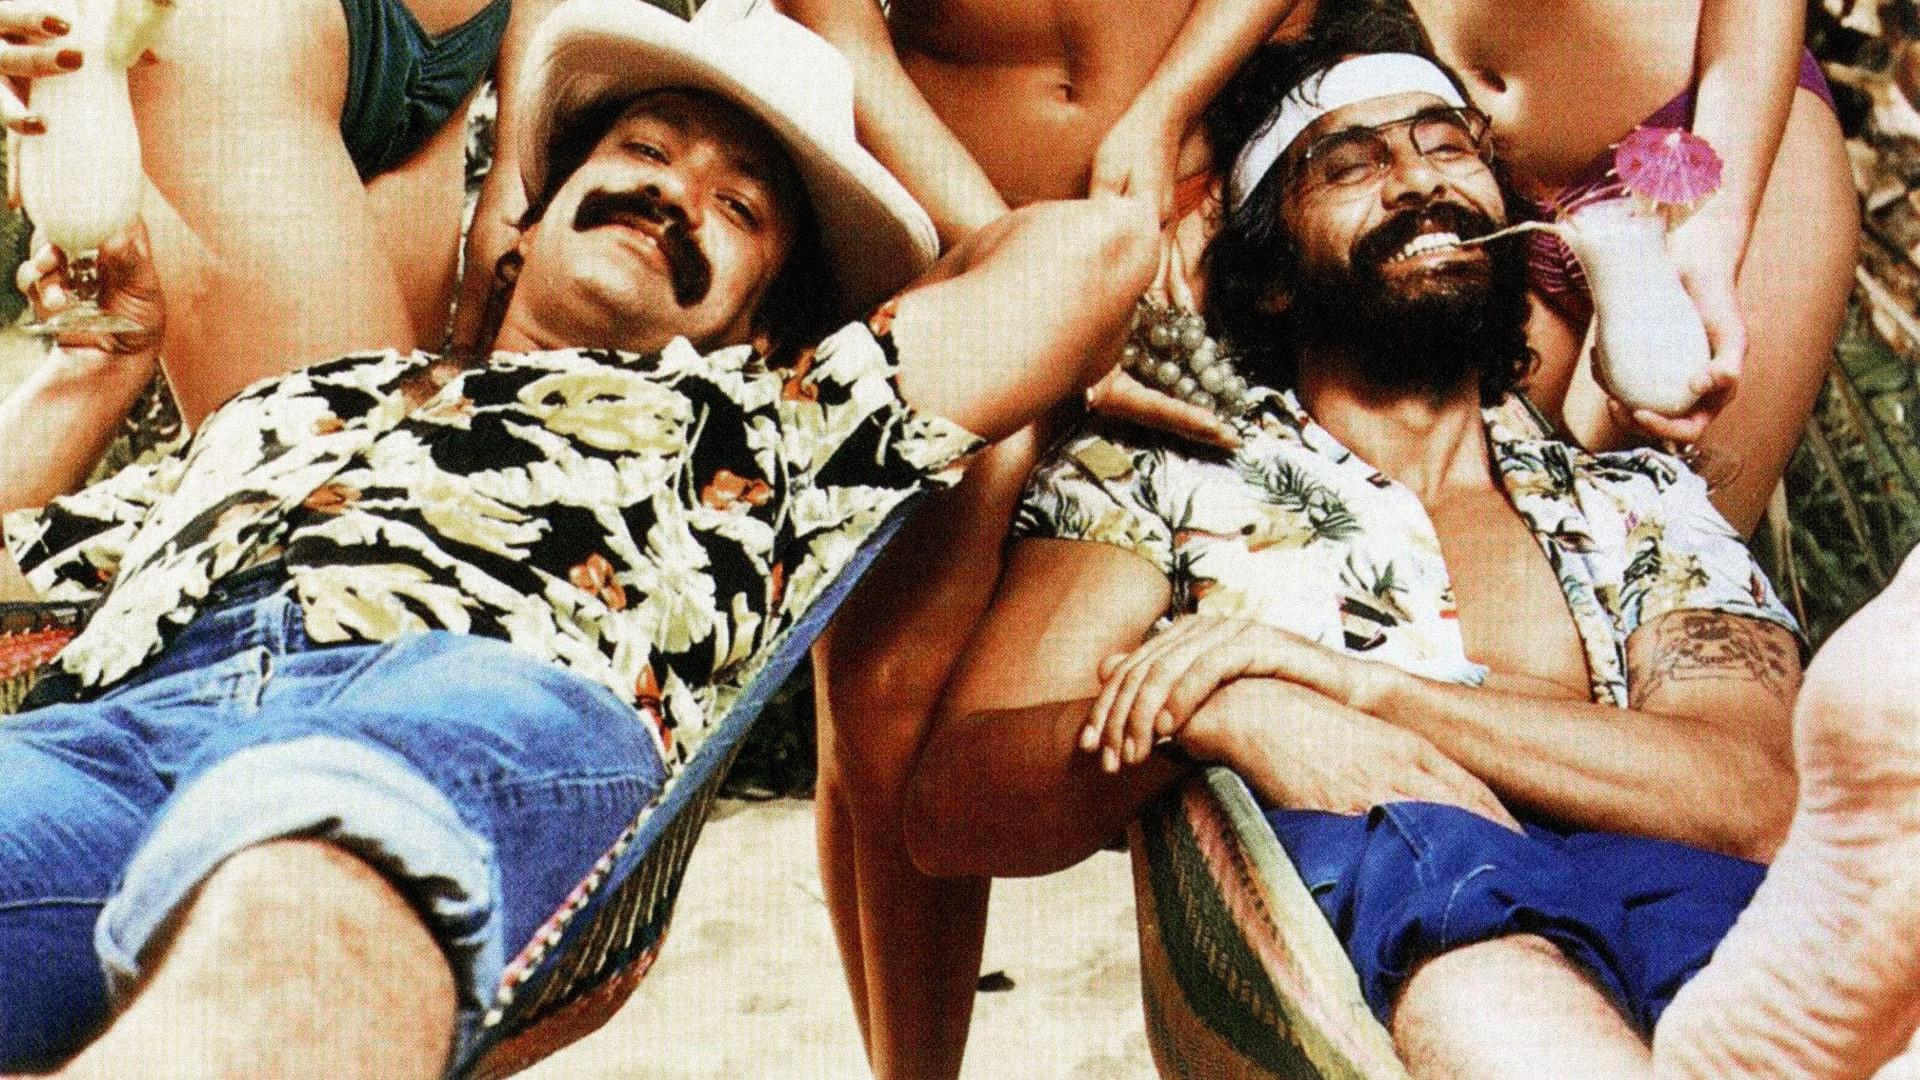 Iphone Wallpaper Movie Quotes Cheech And Chong Wallpapers Pixelstalk Net